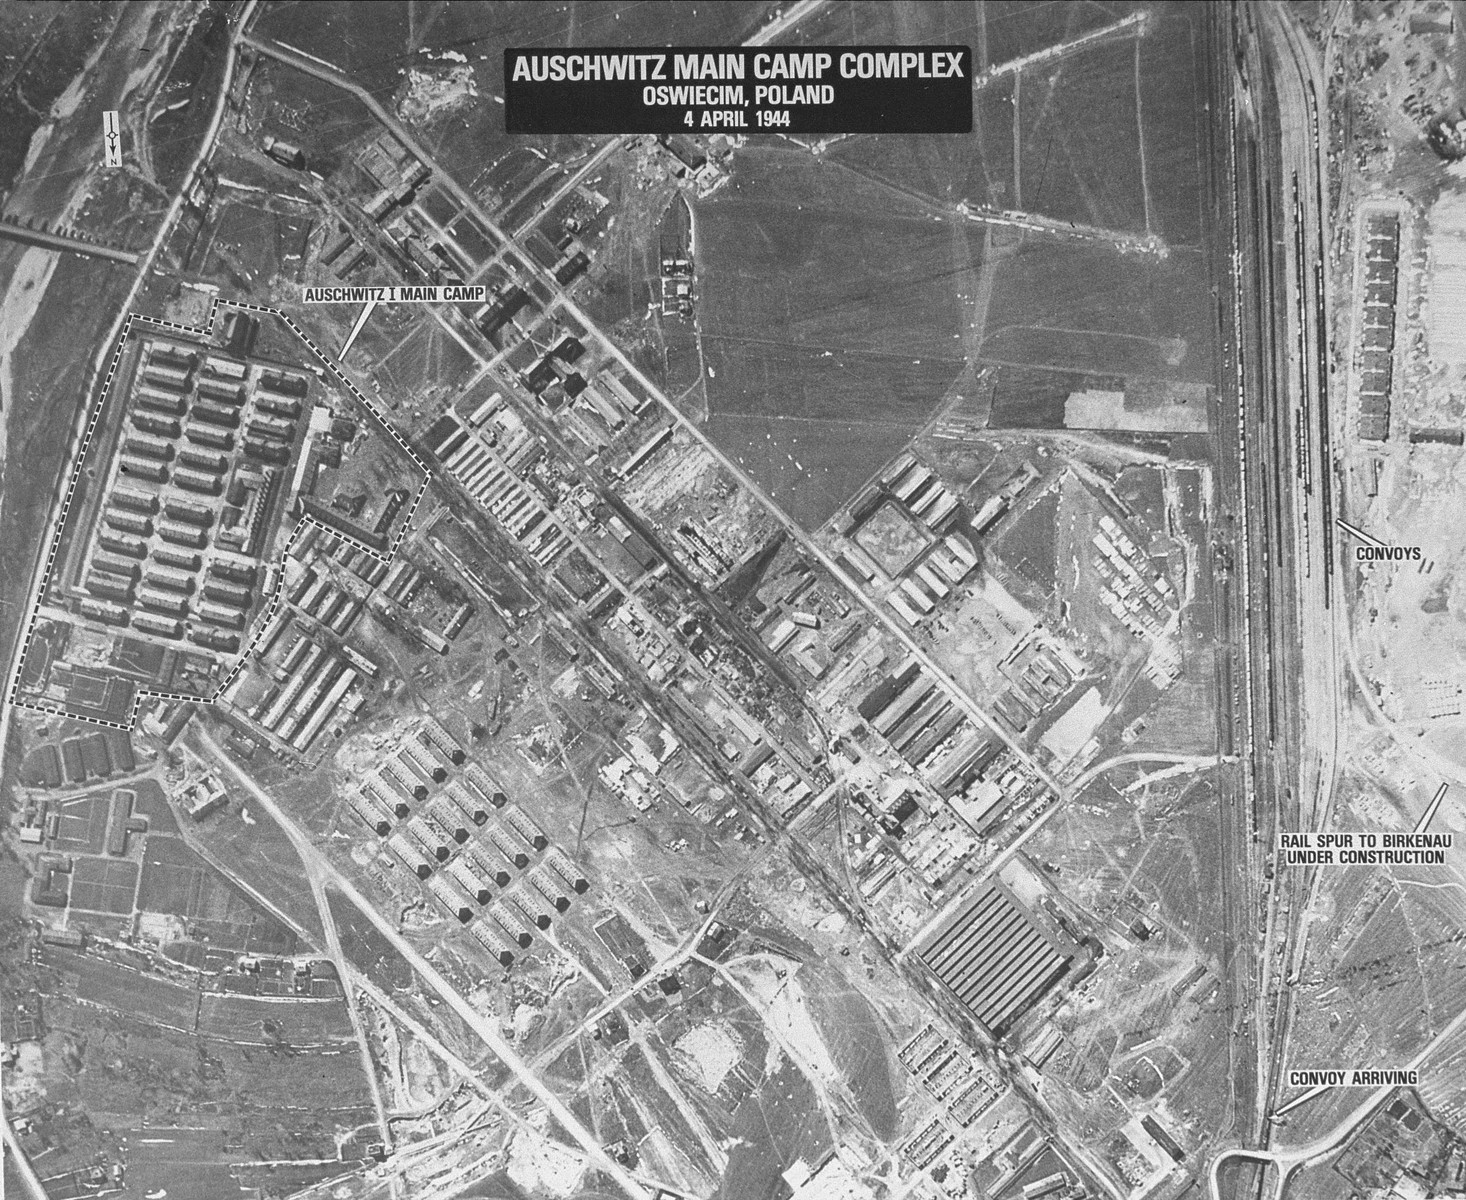 An aerial reconaissance photograph showing the Auschwitz I camp.